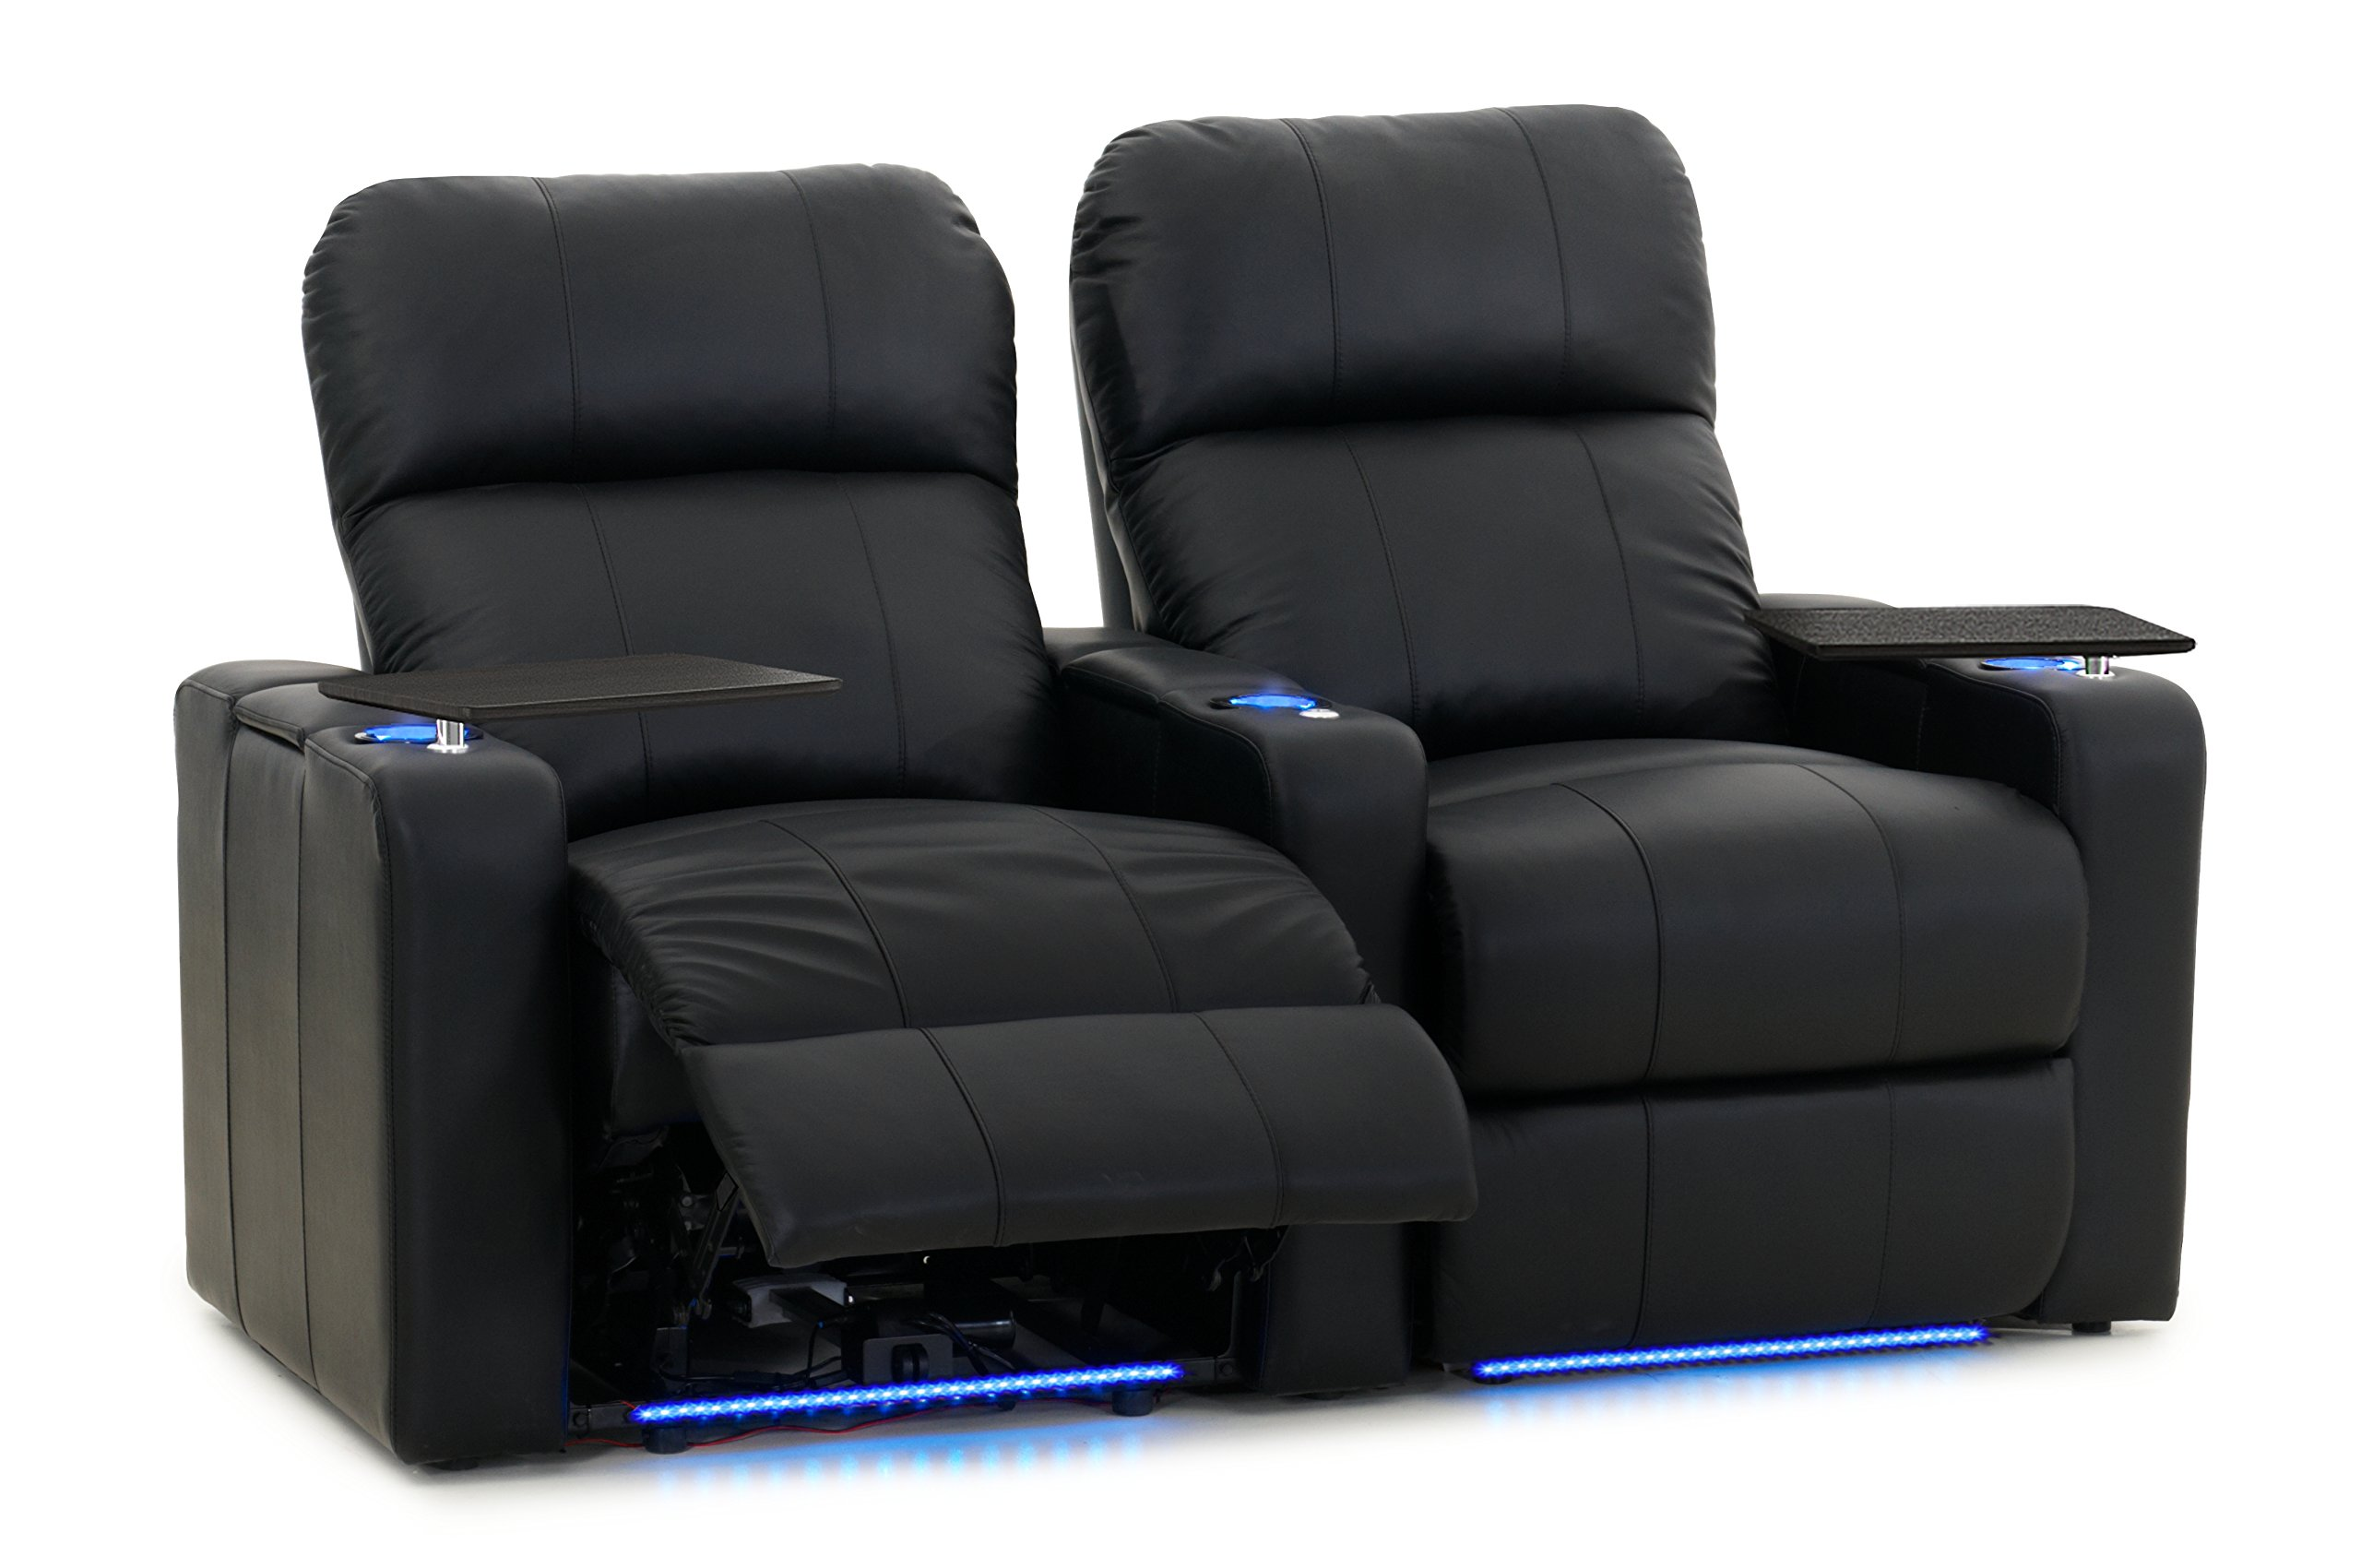 Octane Turbo XL700 Row of 2 Seats, Straight Row in Black Bonded Leather with Power Recline